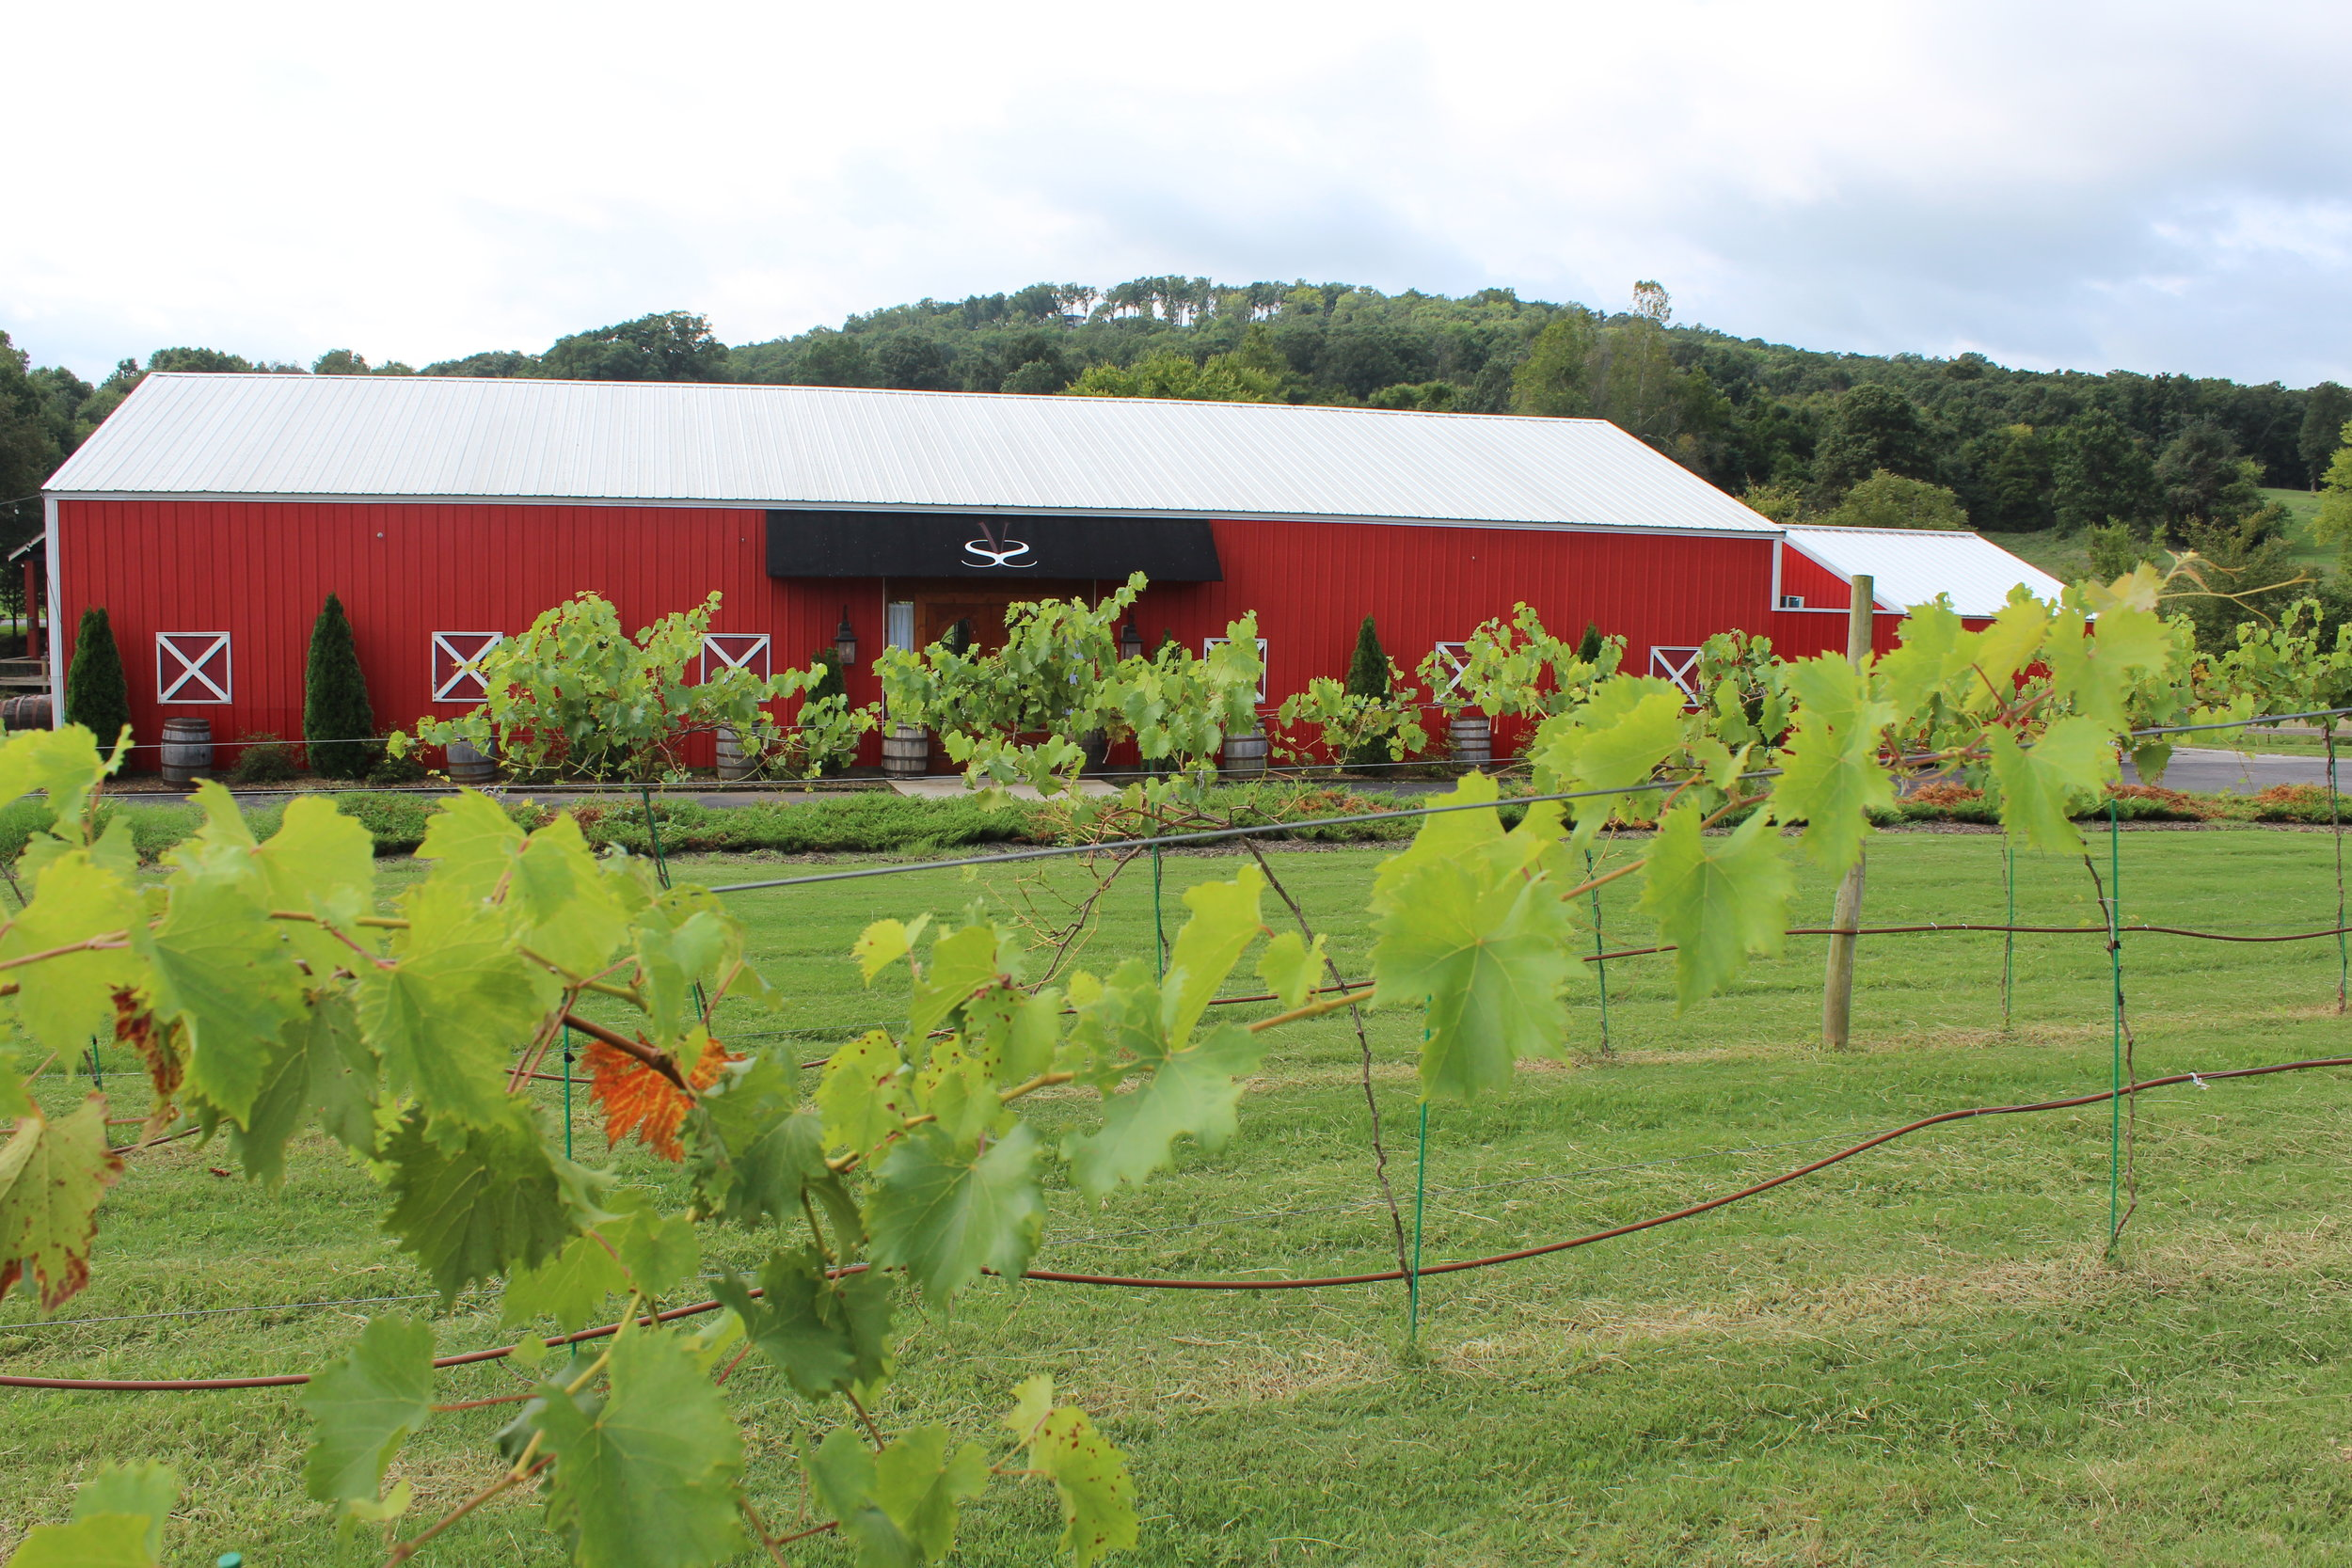 A former horse barn now hosts elegant weddings and community events at Sassafras Winery in Springdale.